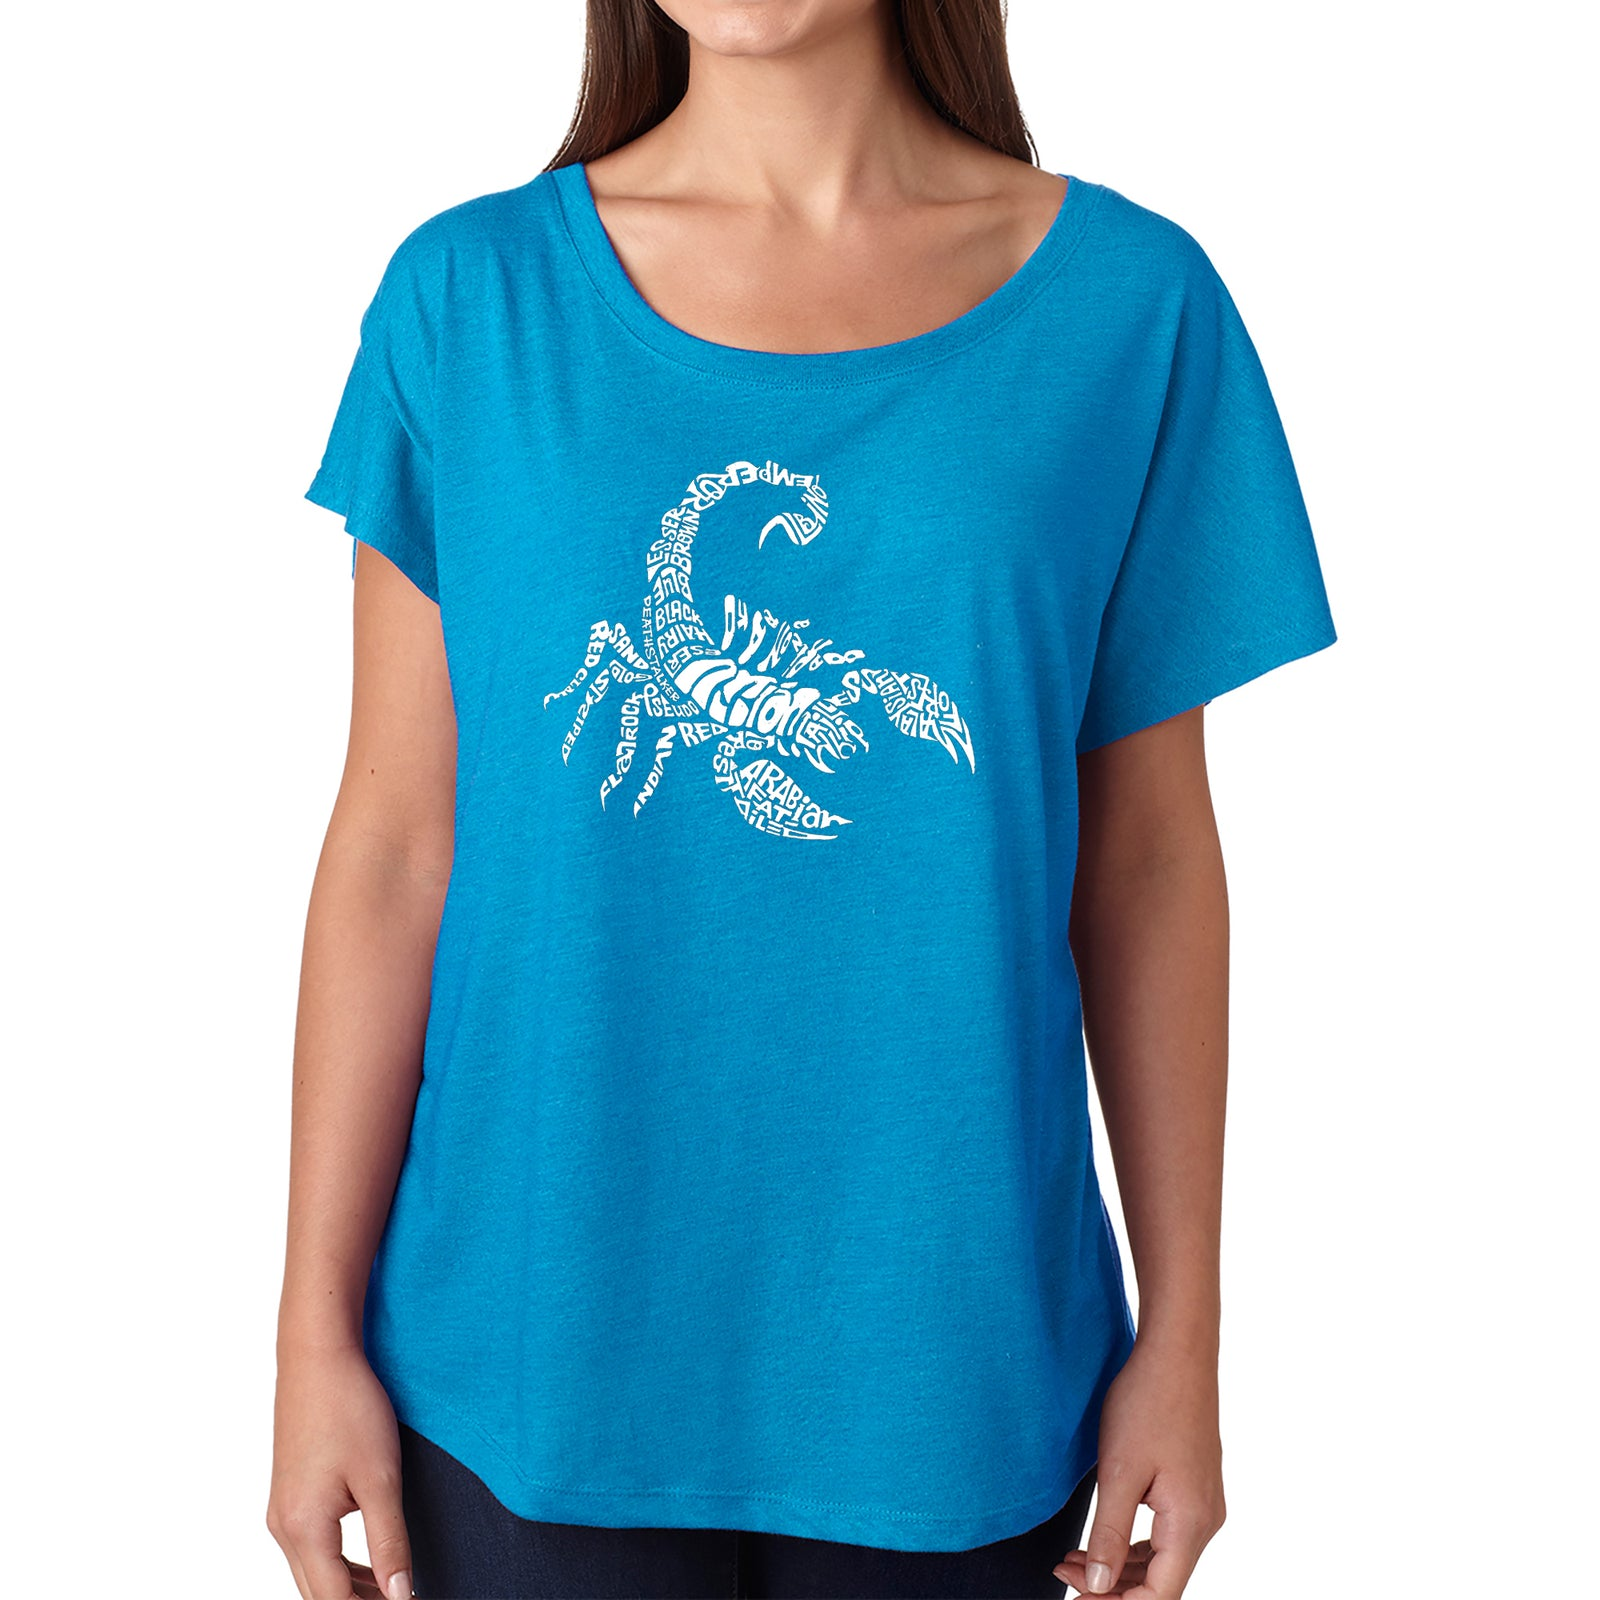 Women's Loose Fit Dolman Cut Word Art Shirt - Types of Scorpions